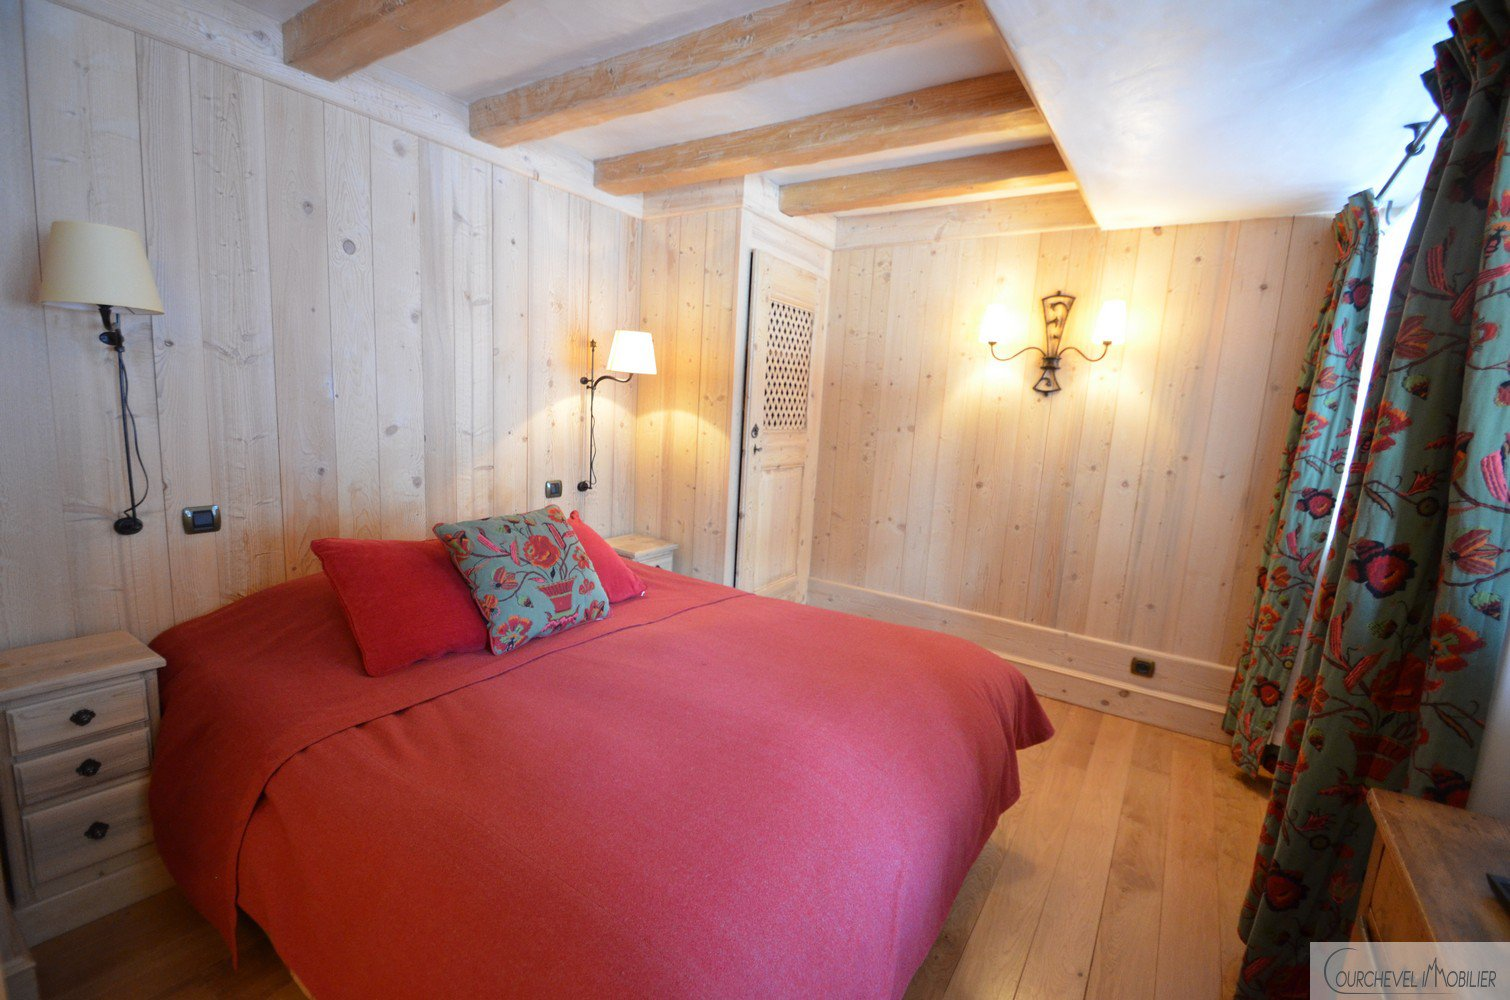 Superb apartment - Courchevel Moriond